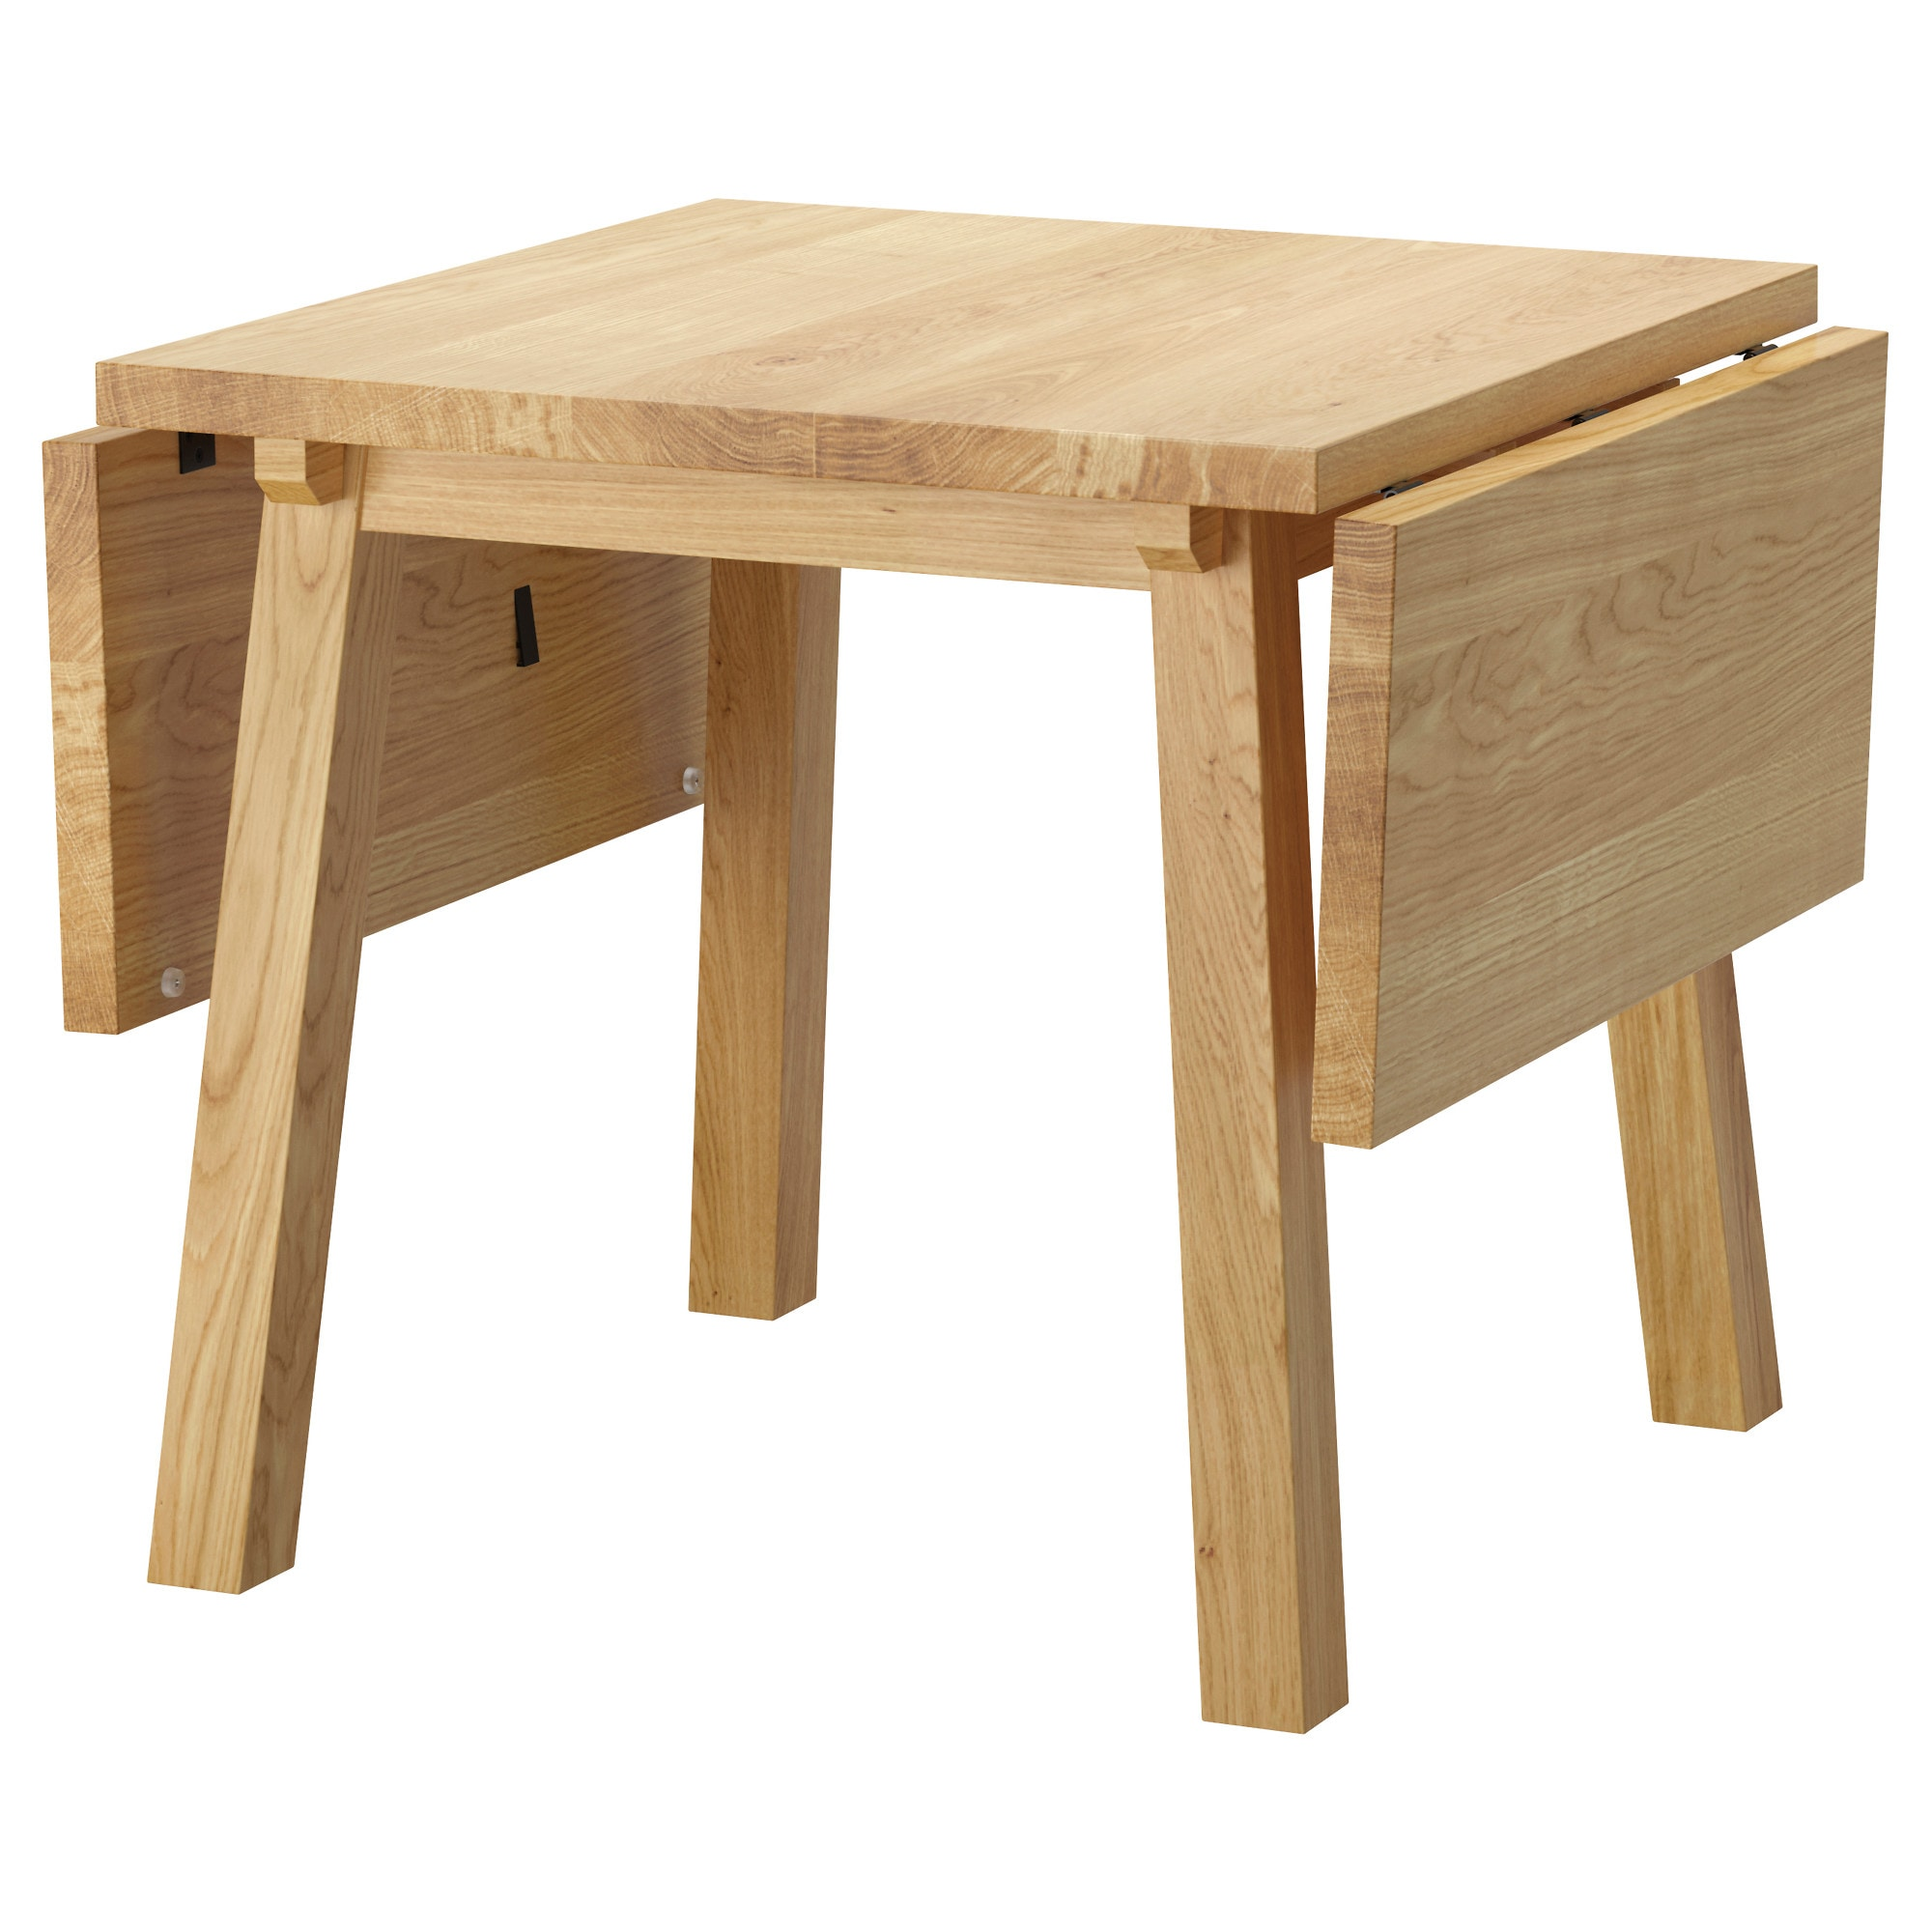 Ikea Folding Dining Table mÖckelby drop-leaf table - ikea